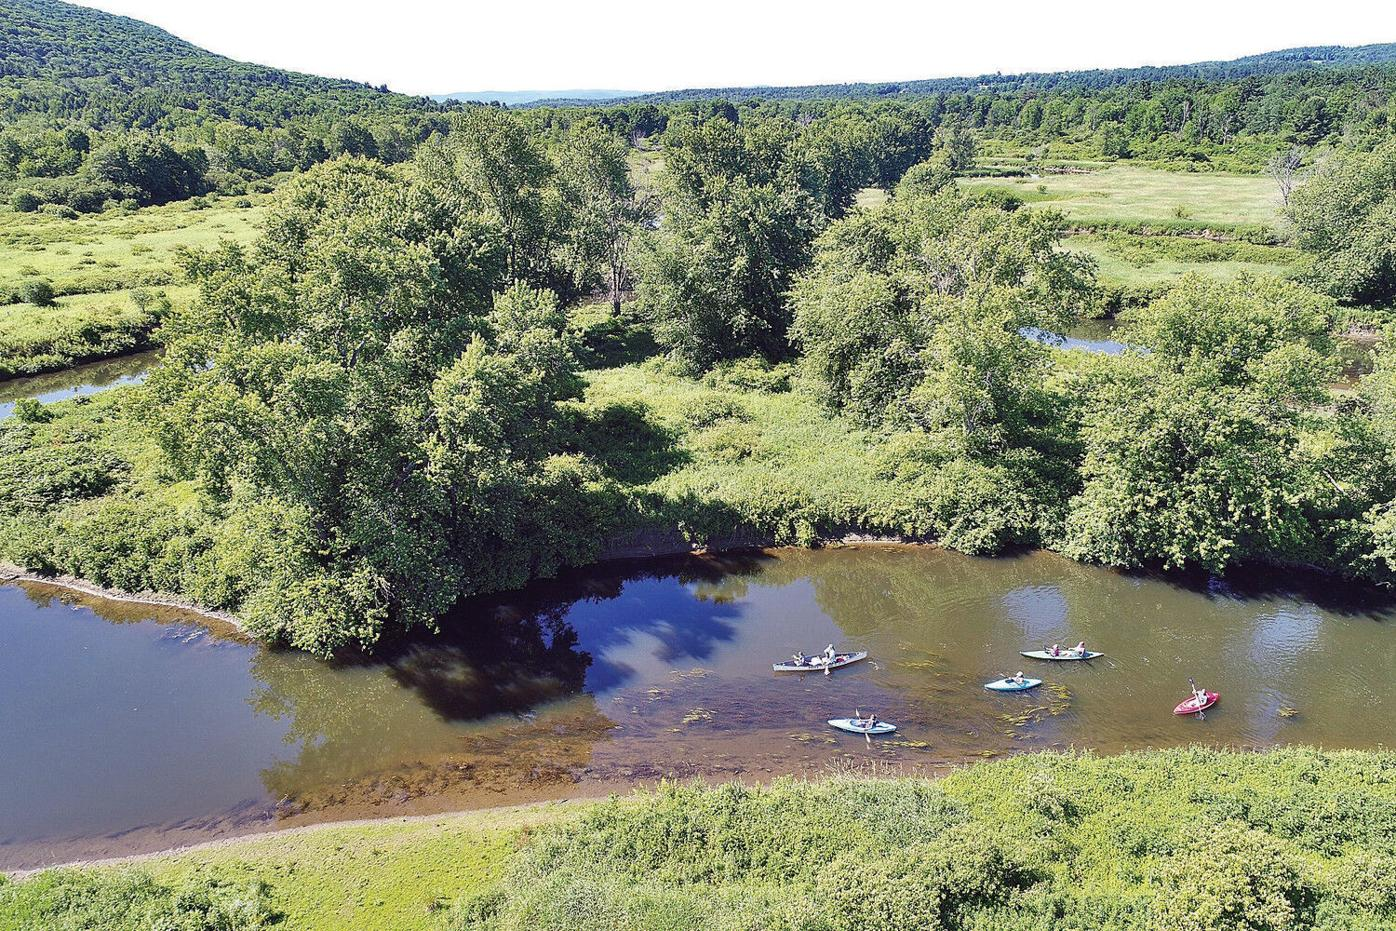 'Rest of River' towns will join mediation on cleanup